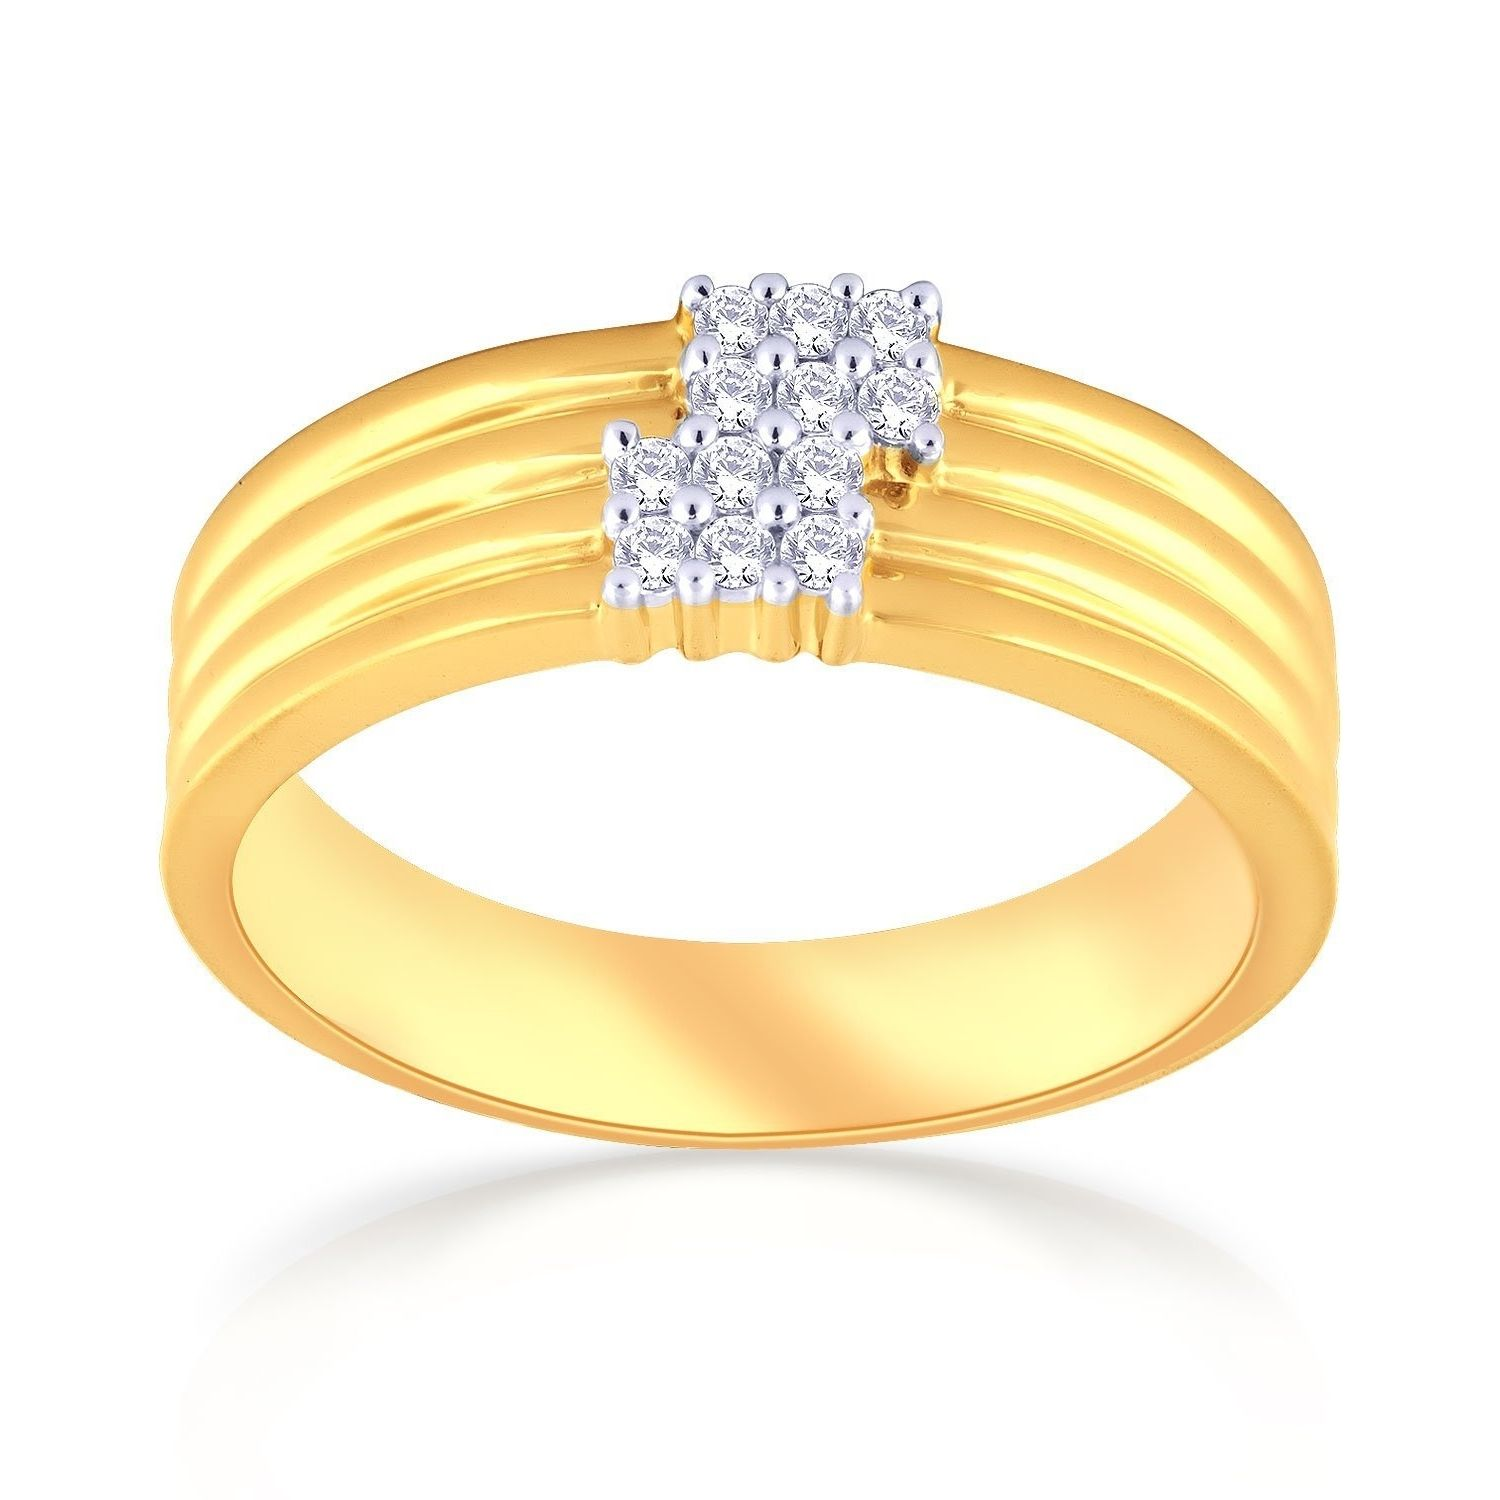 Malabar Gold And Diamonds Rings Ring Pinterest